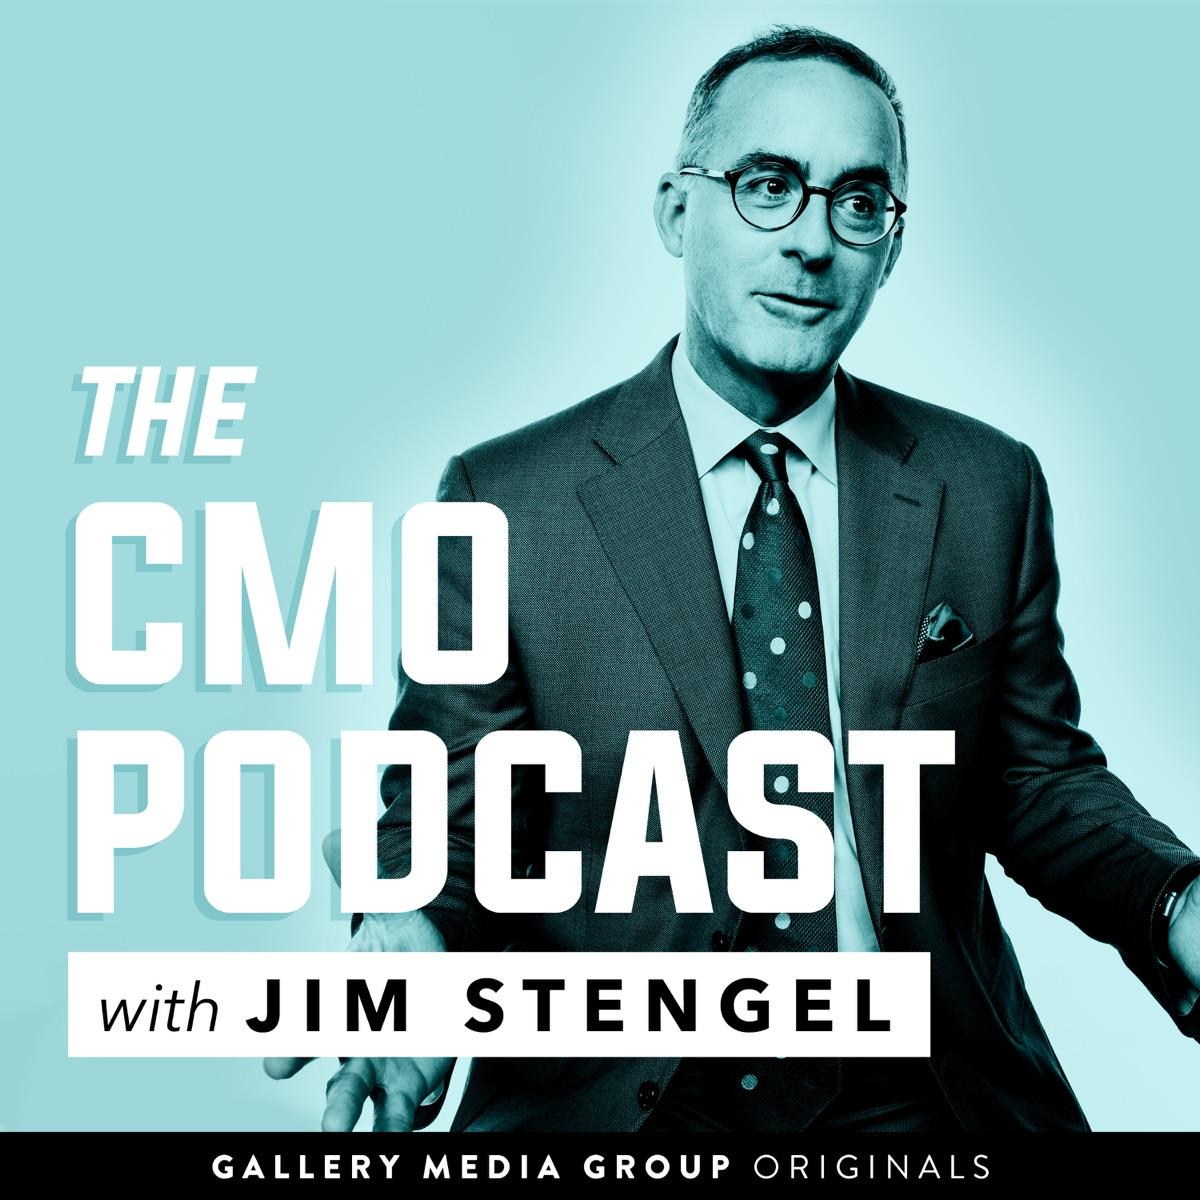 The CMO Podcast